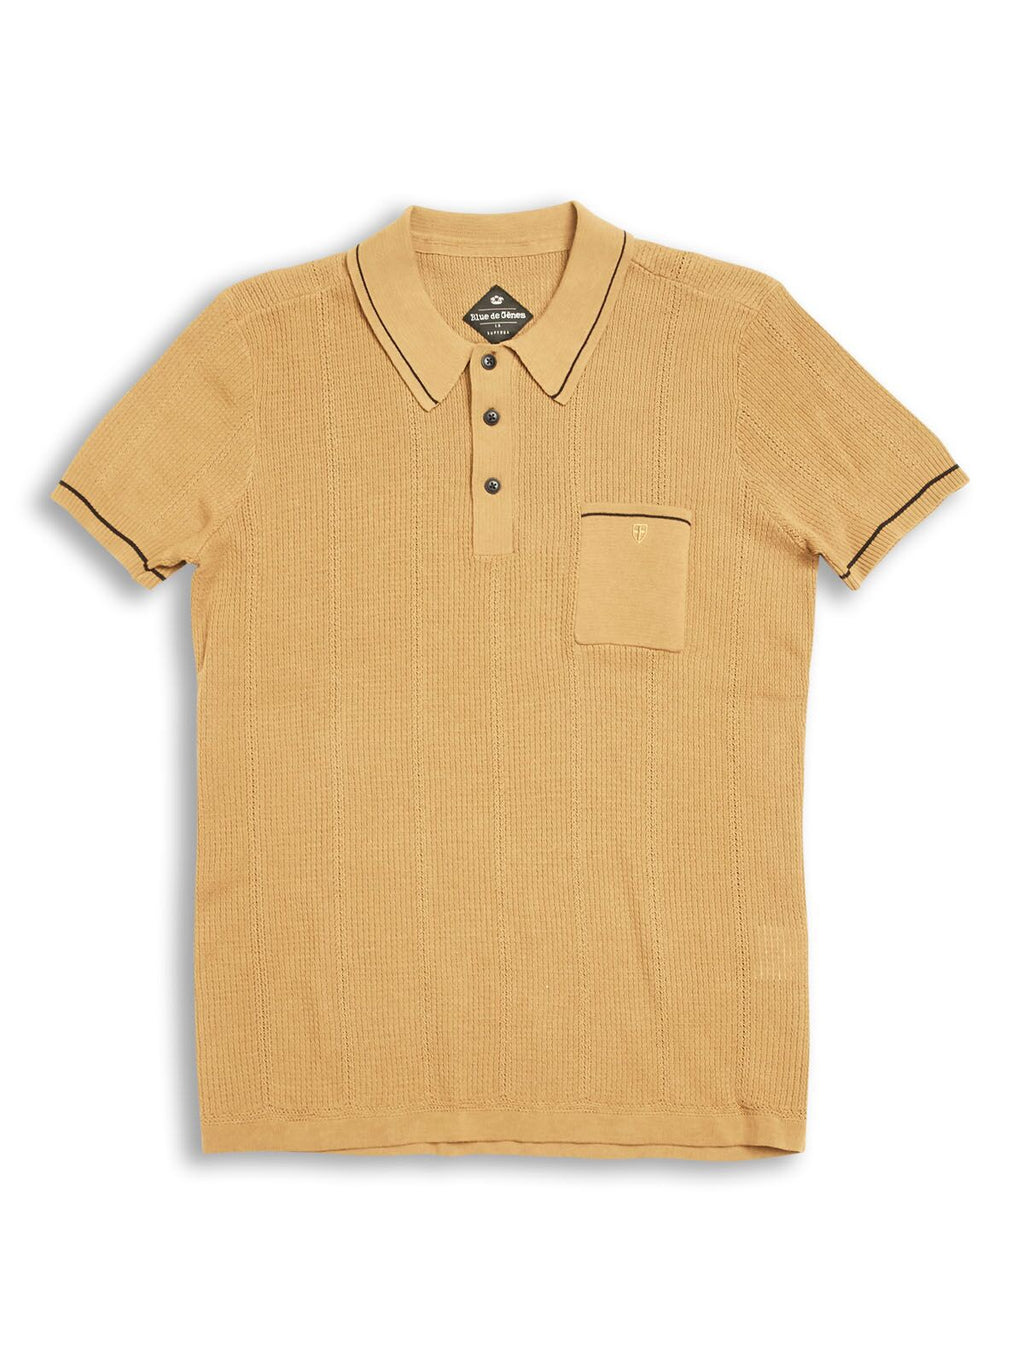 Blue de Genes Khaki Dolce Polo Knit - REDUCED!